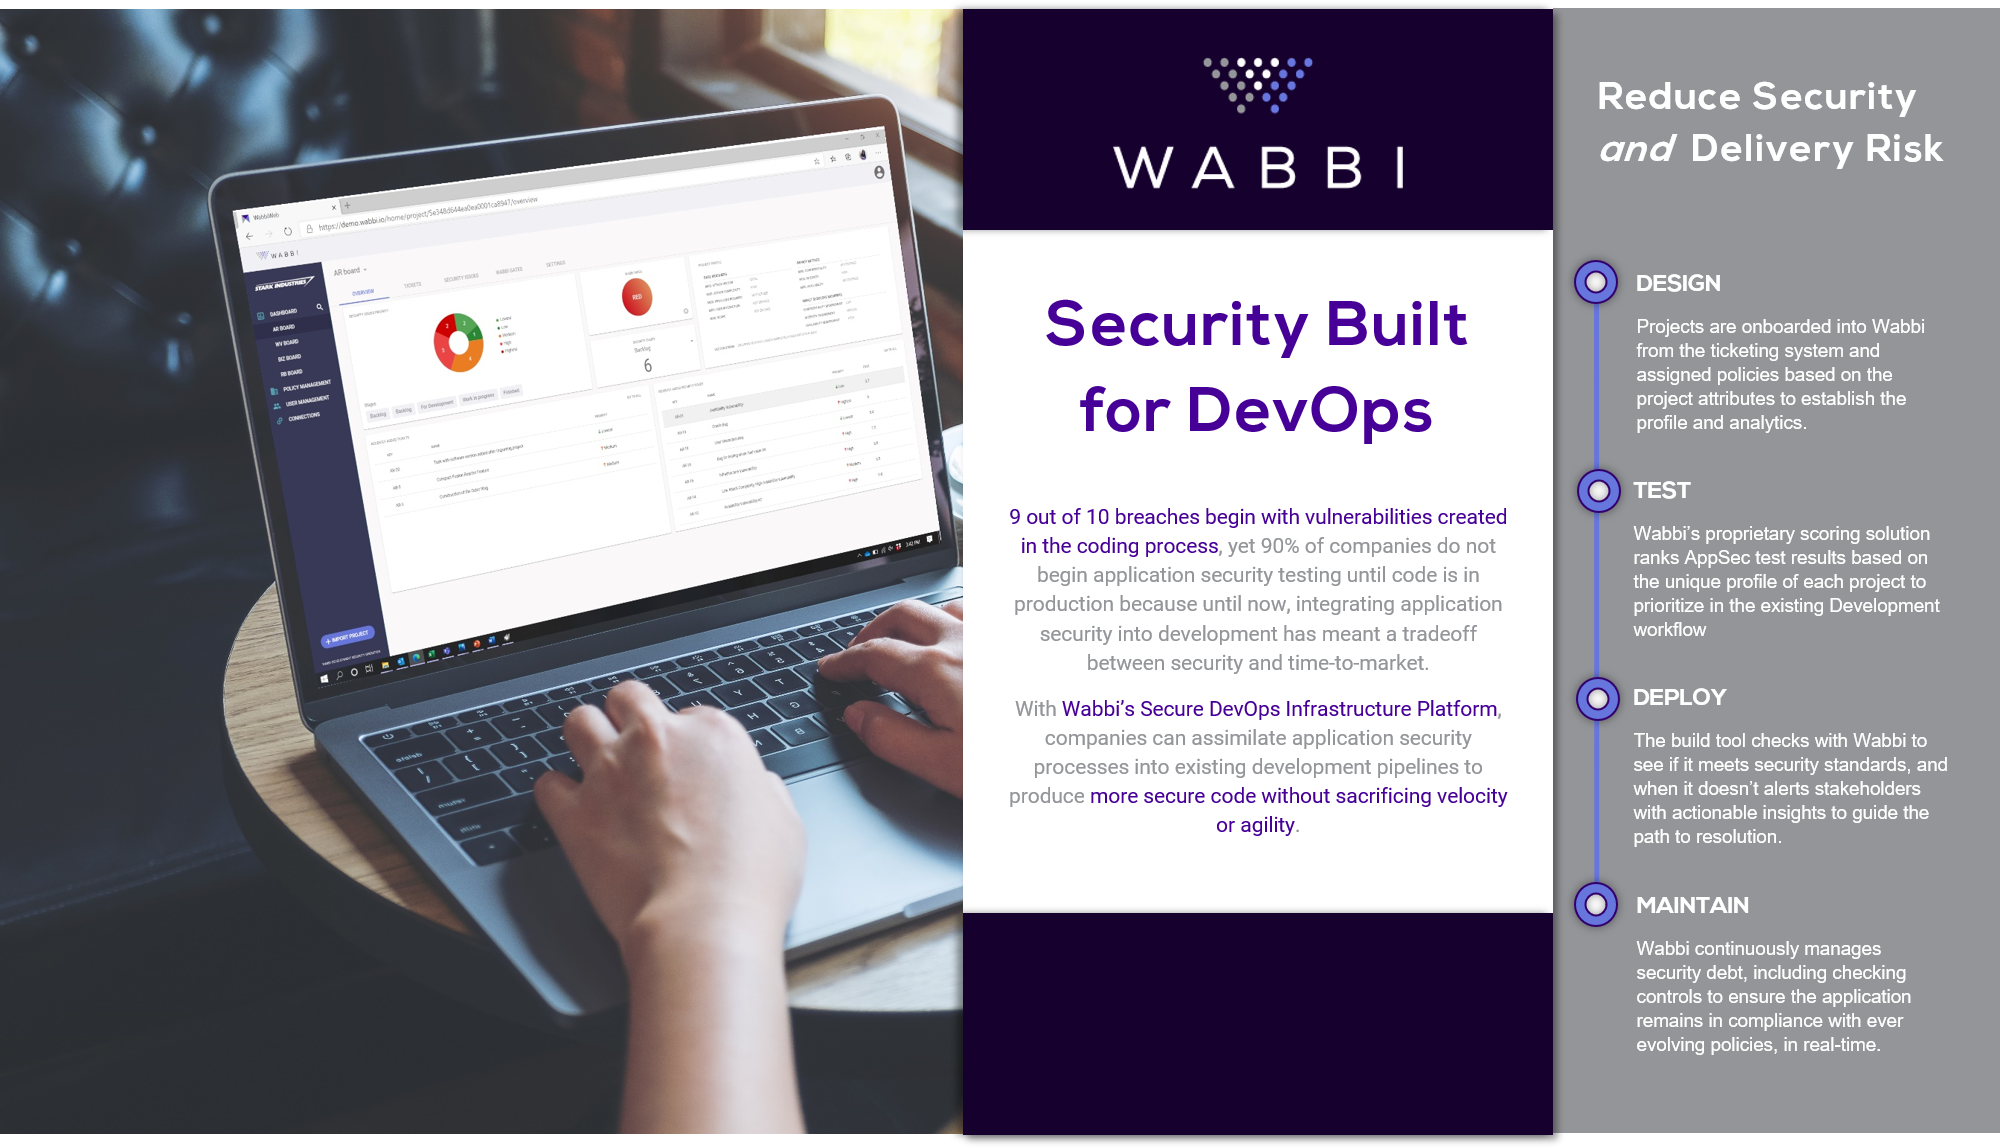 Wabbi Security Built For DevOps